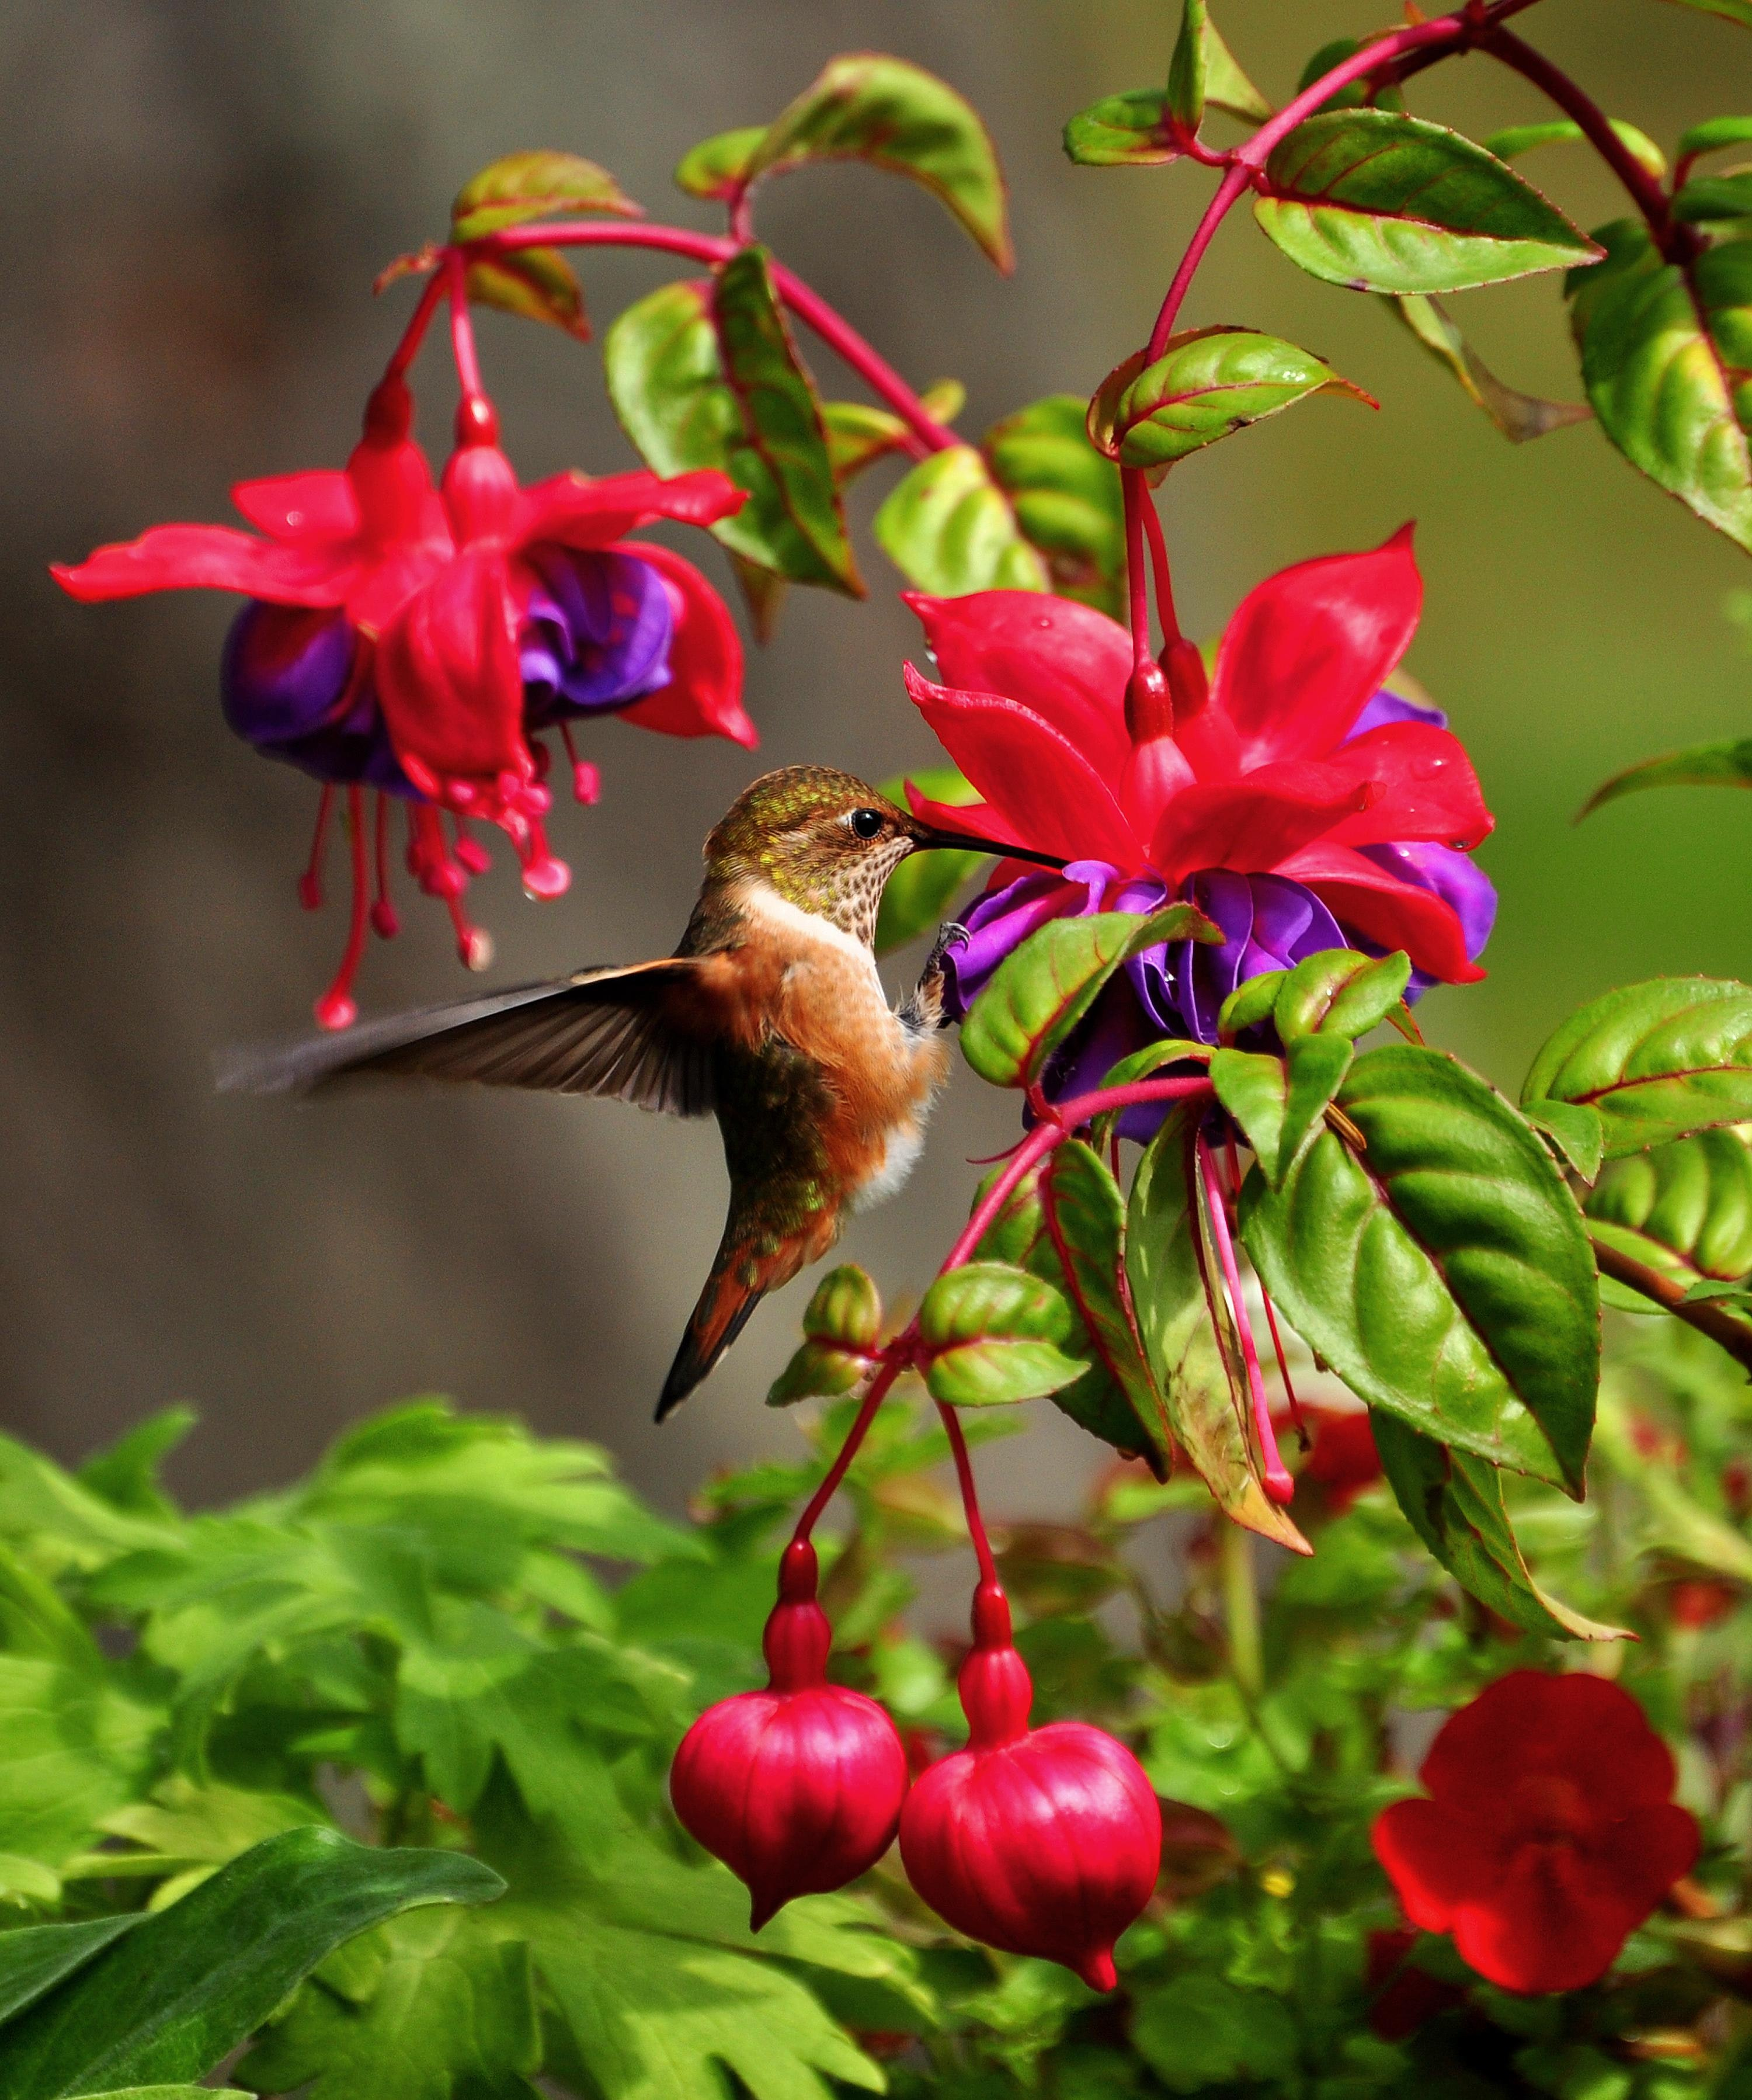 wildlife photography of brown hummingbird near red petaled flower